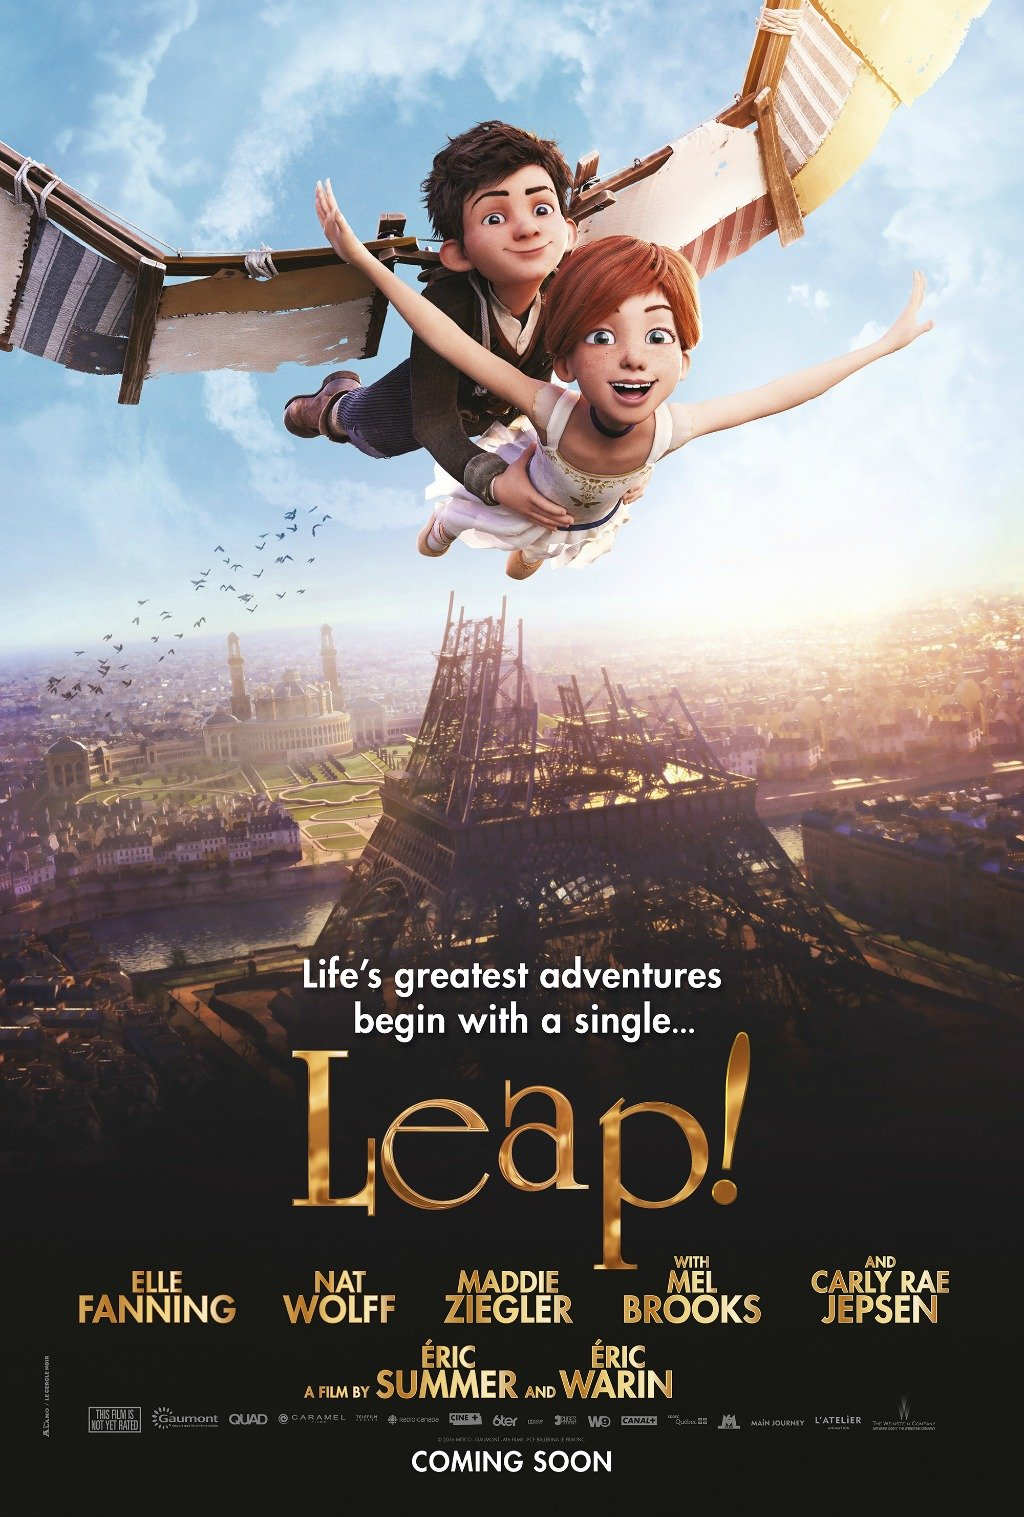 New Trailer for Leap! Starring Elle Fanning and Nat Wolff